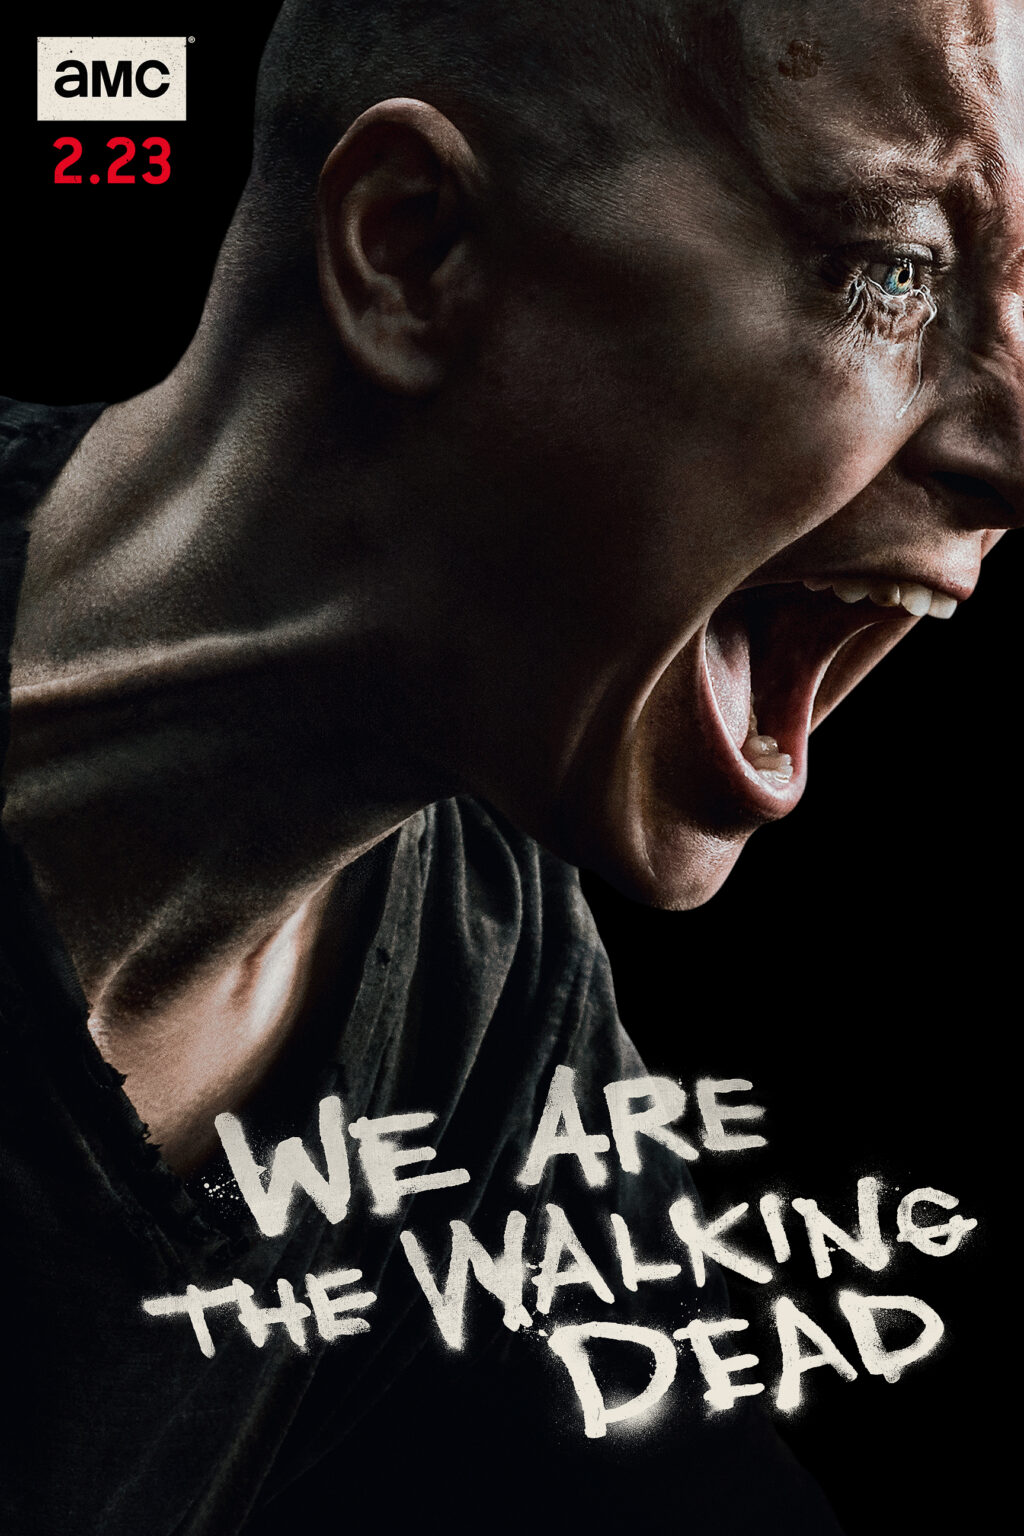 TWD Alpha Poster 1024x1536 - Meet the Colorful Stranger in Opening Minutes of This Sunday's New Episode of The Walking Dead